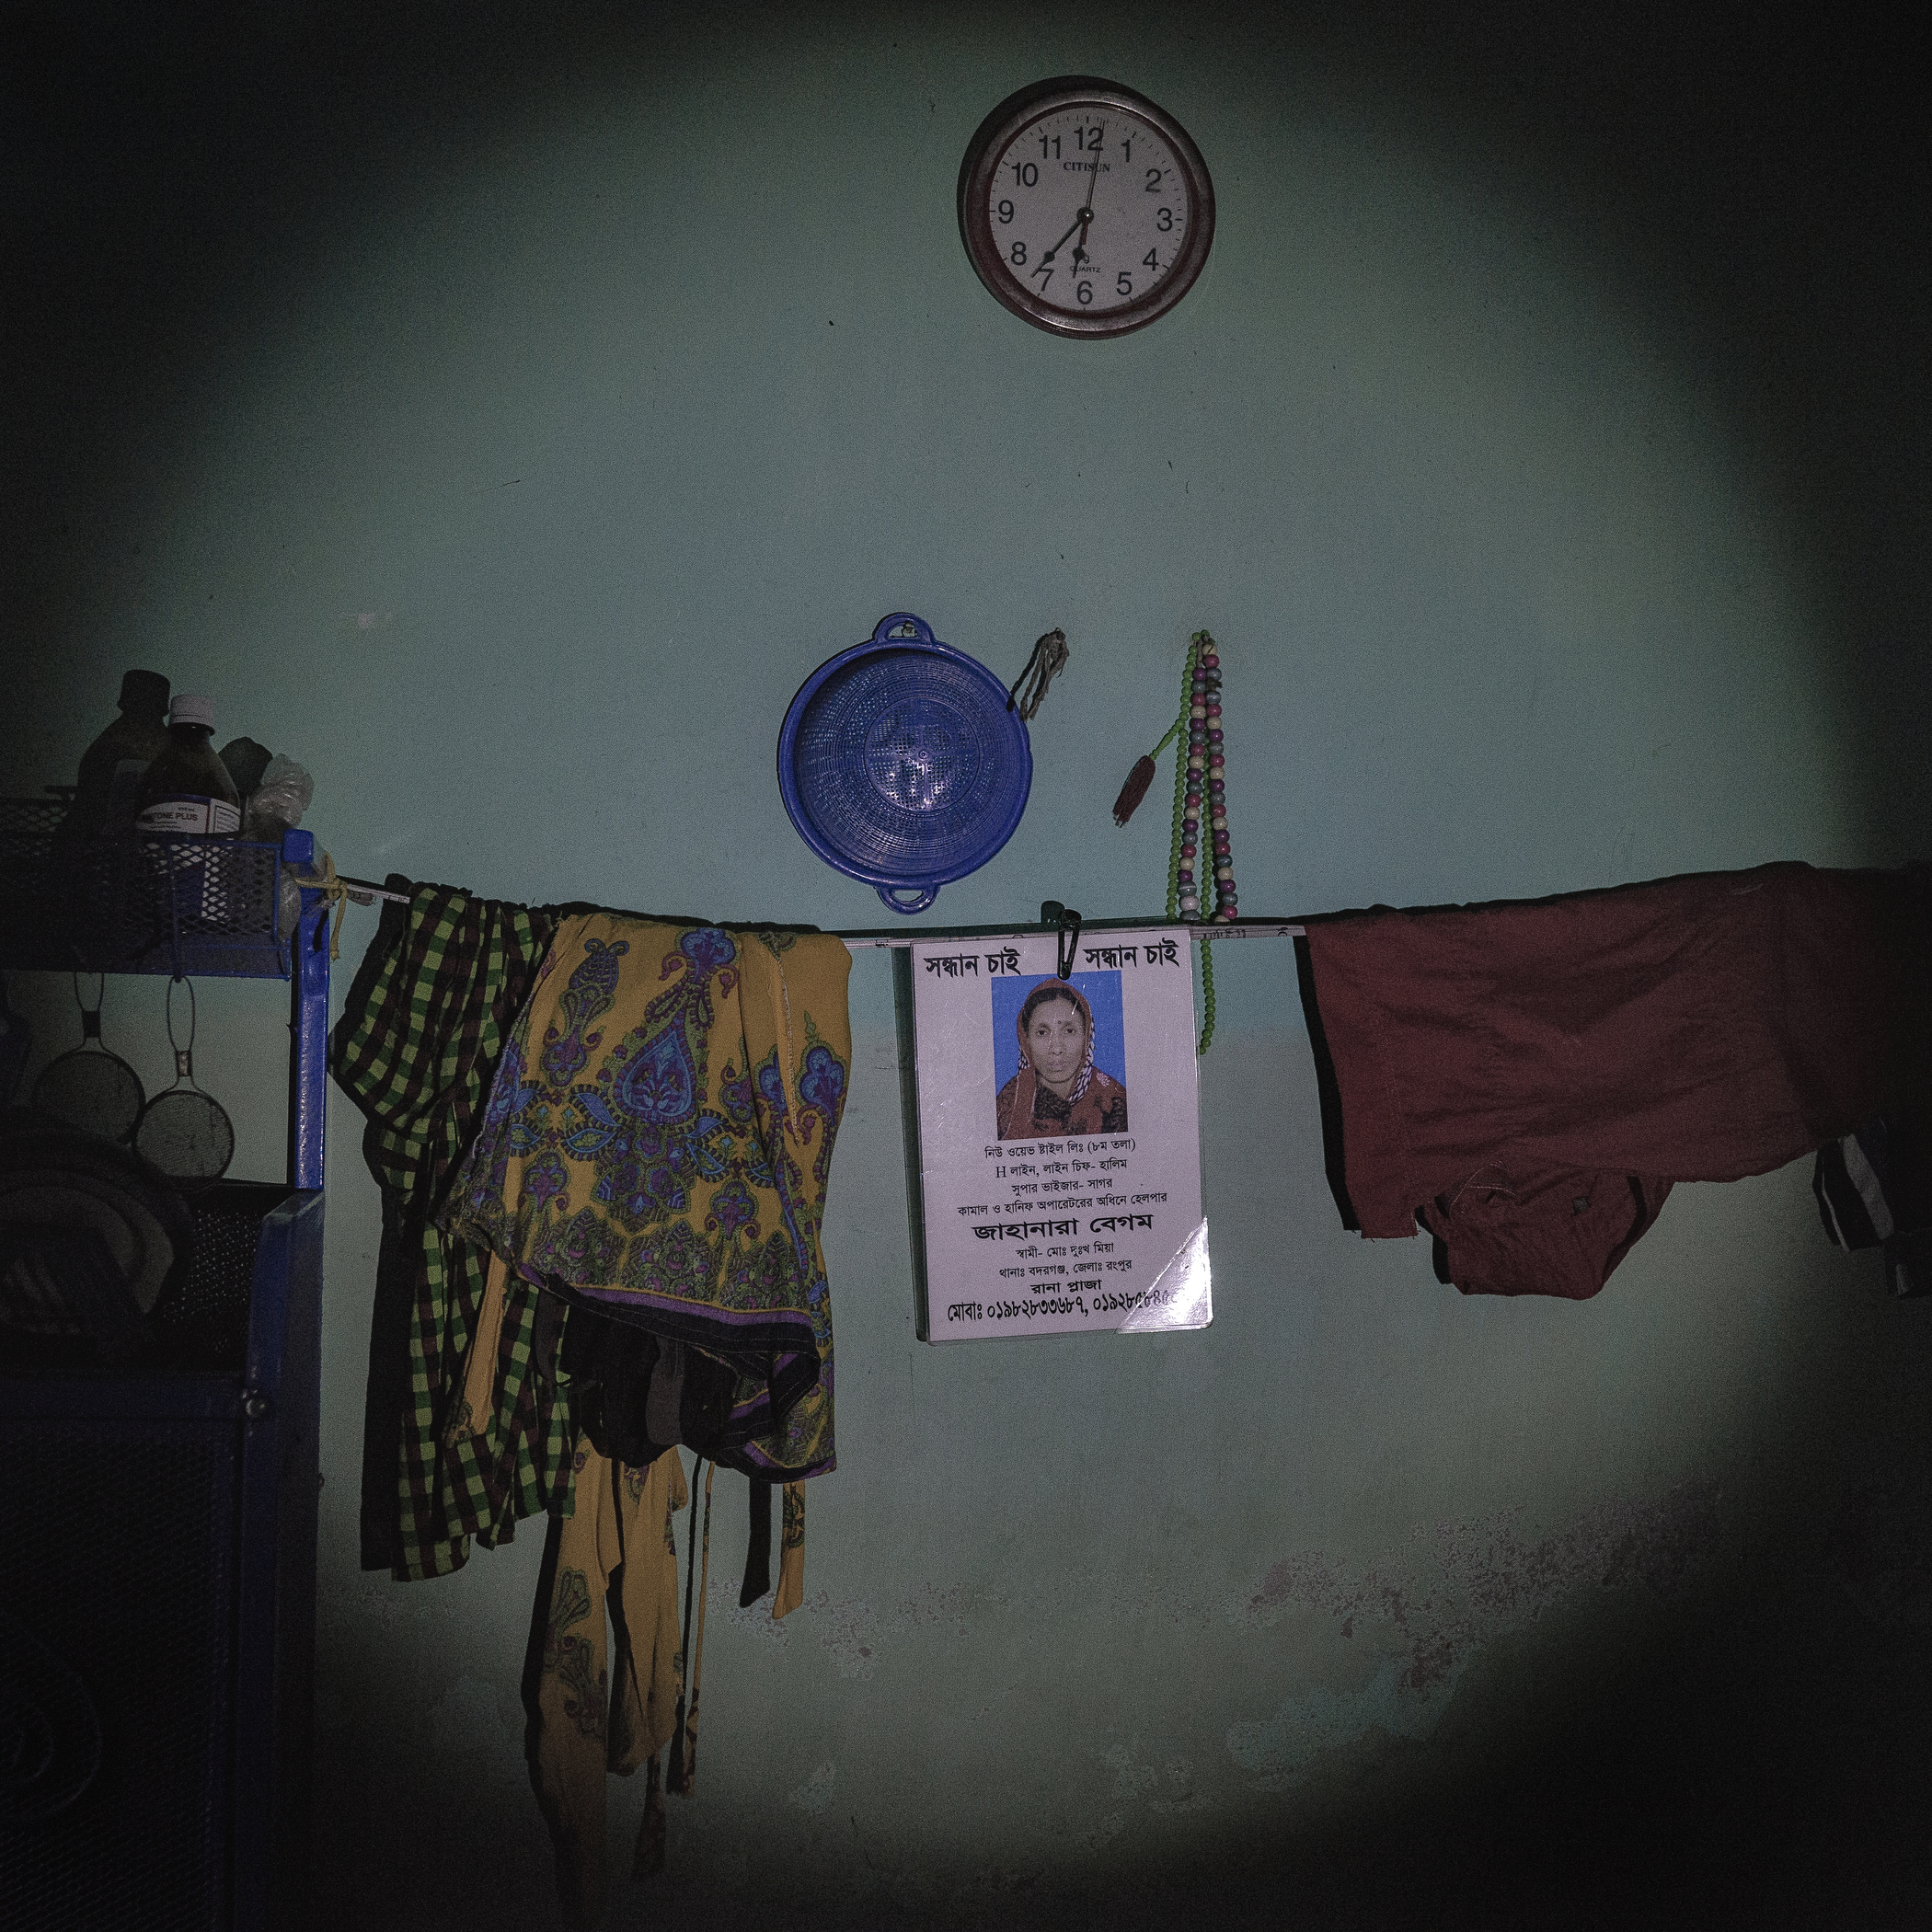 Jahanara Begum was missing after the Rana Plaza collapse and only after 6-7 months after the incident, her body was identified in the Jurain graveyard